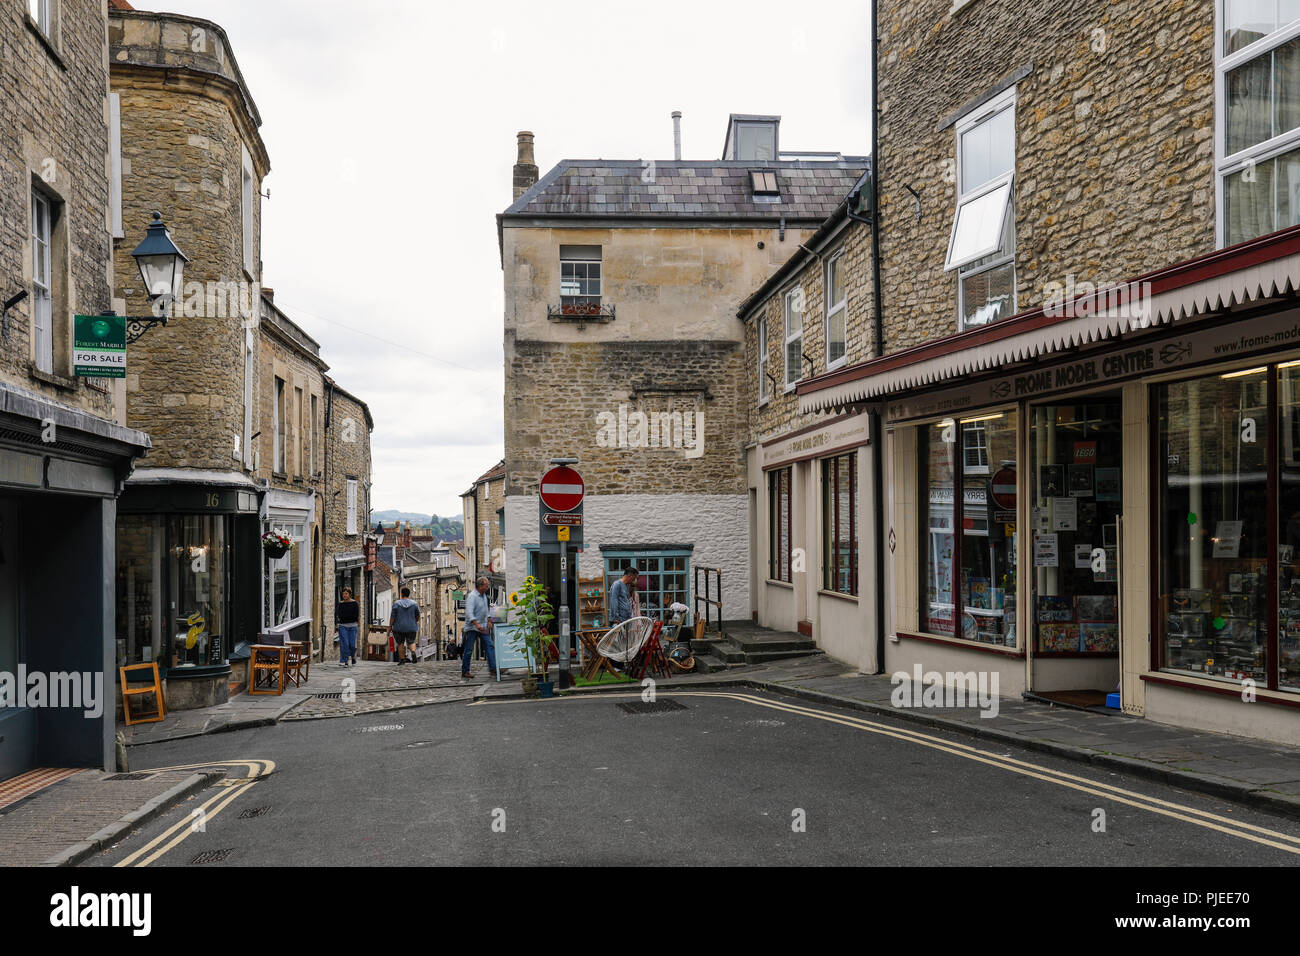 Catherine Hill, Frome, Somerset, England - Stock Image